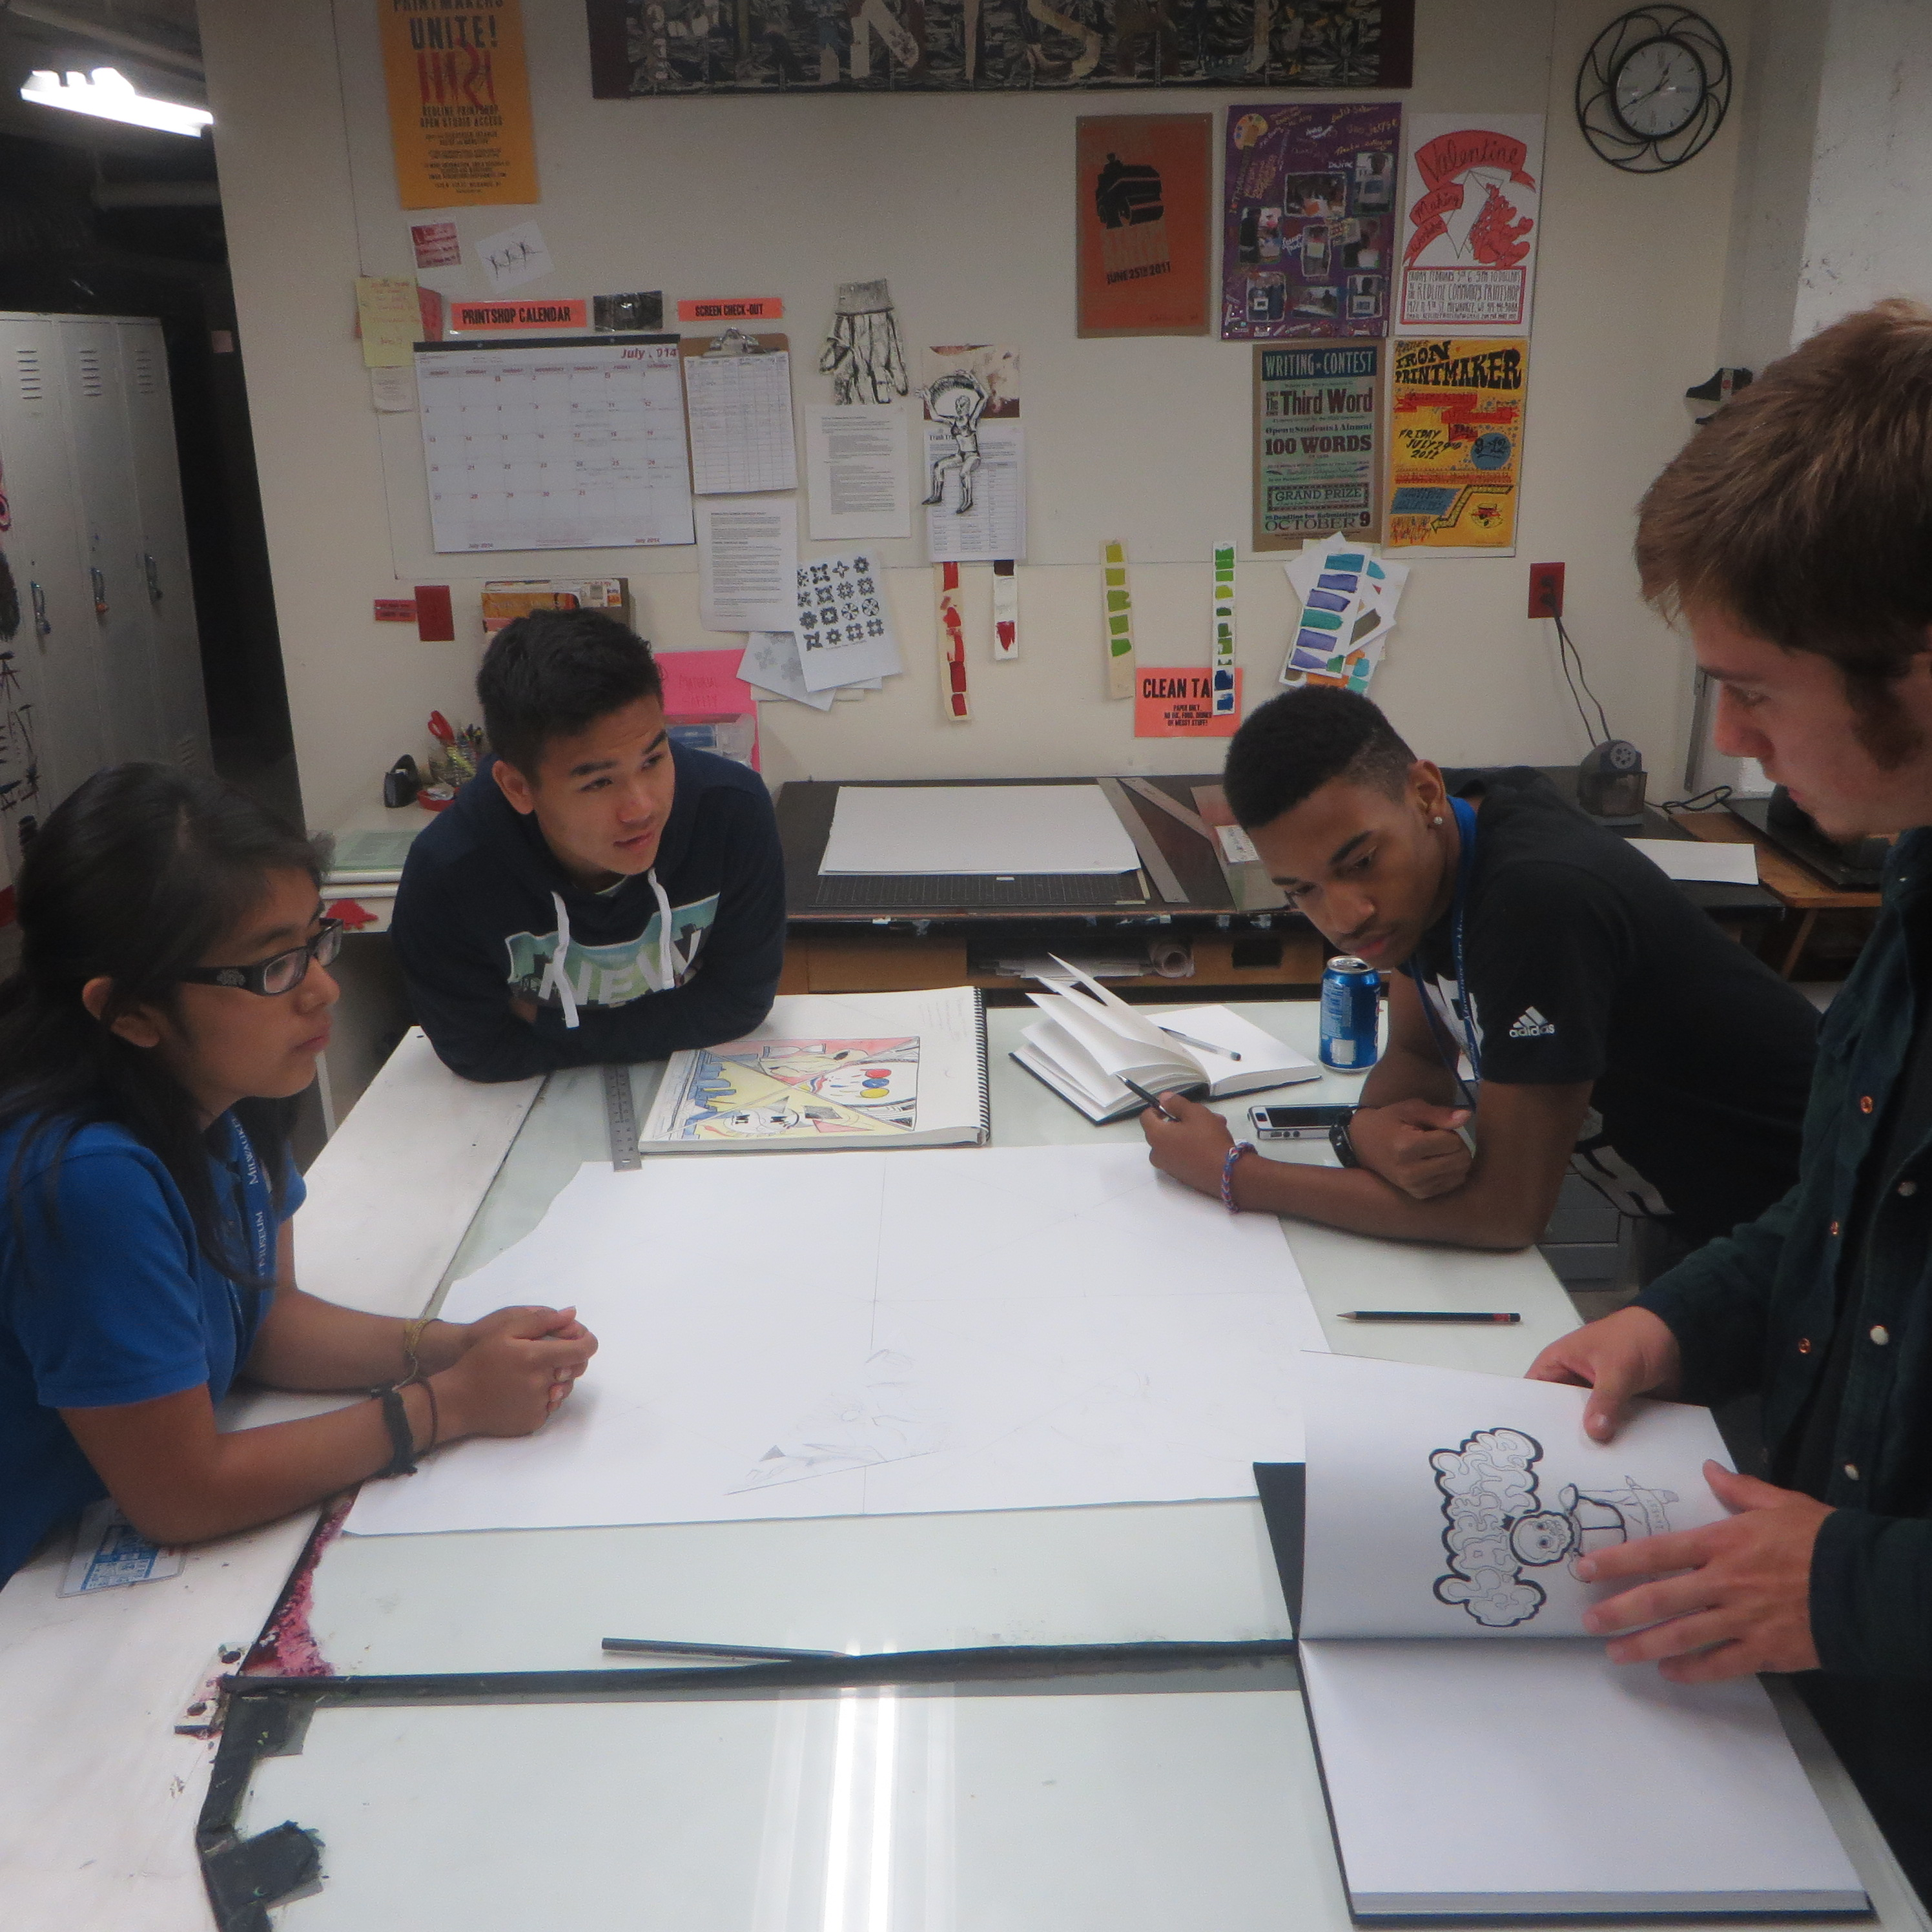 Anaeli, Xai, Diamante, and Clarence discuss ideas for the composition of their portion of the mural. Photo by Jessica Janzer